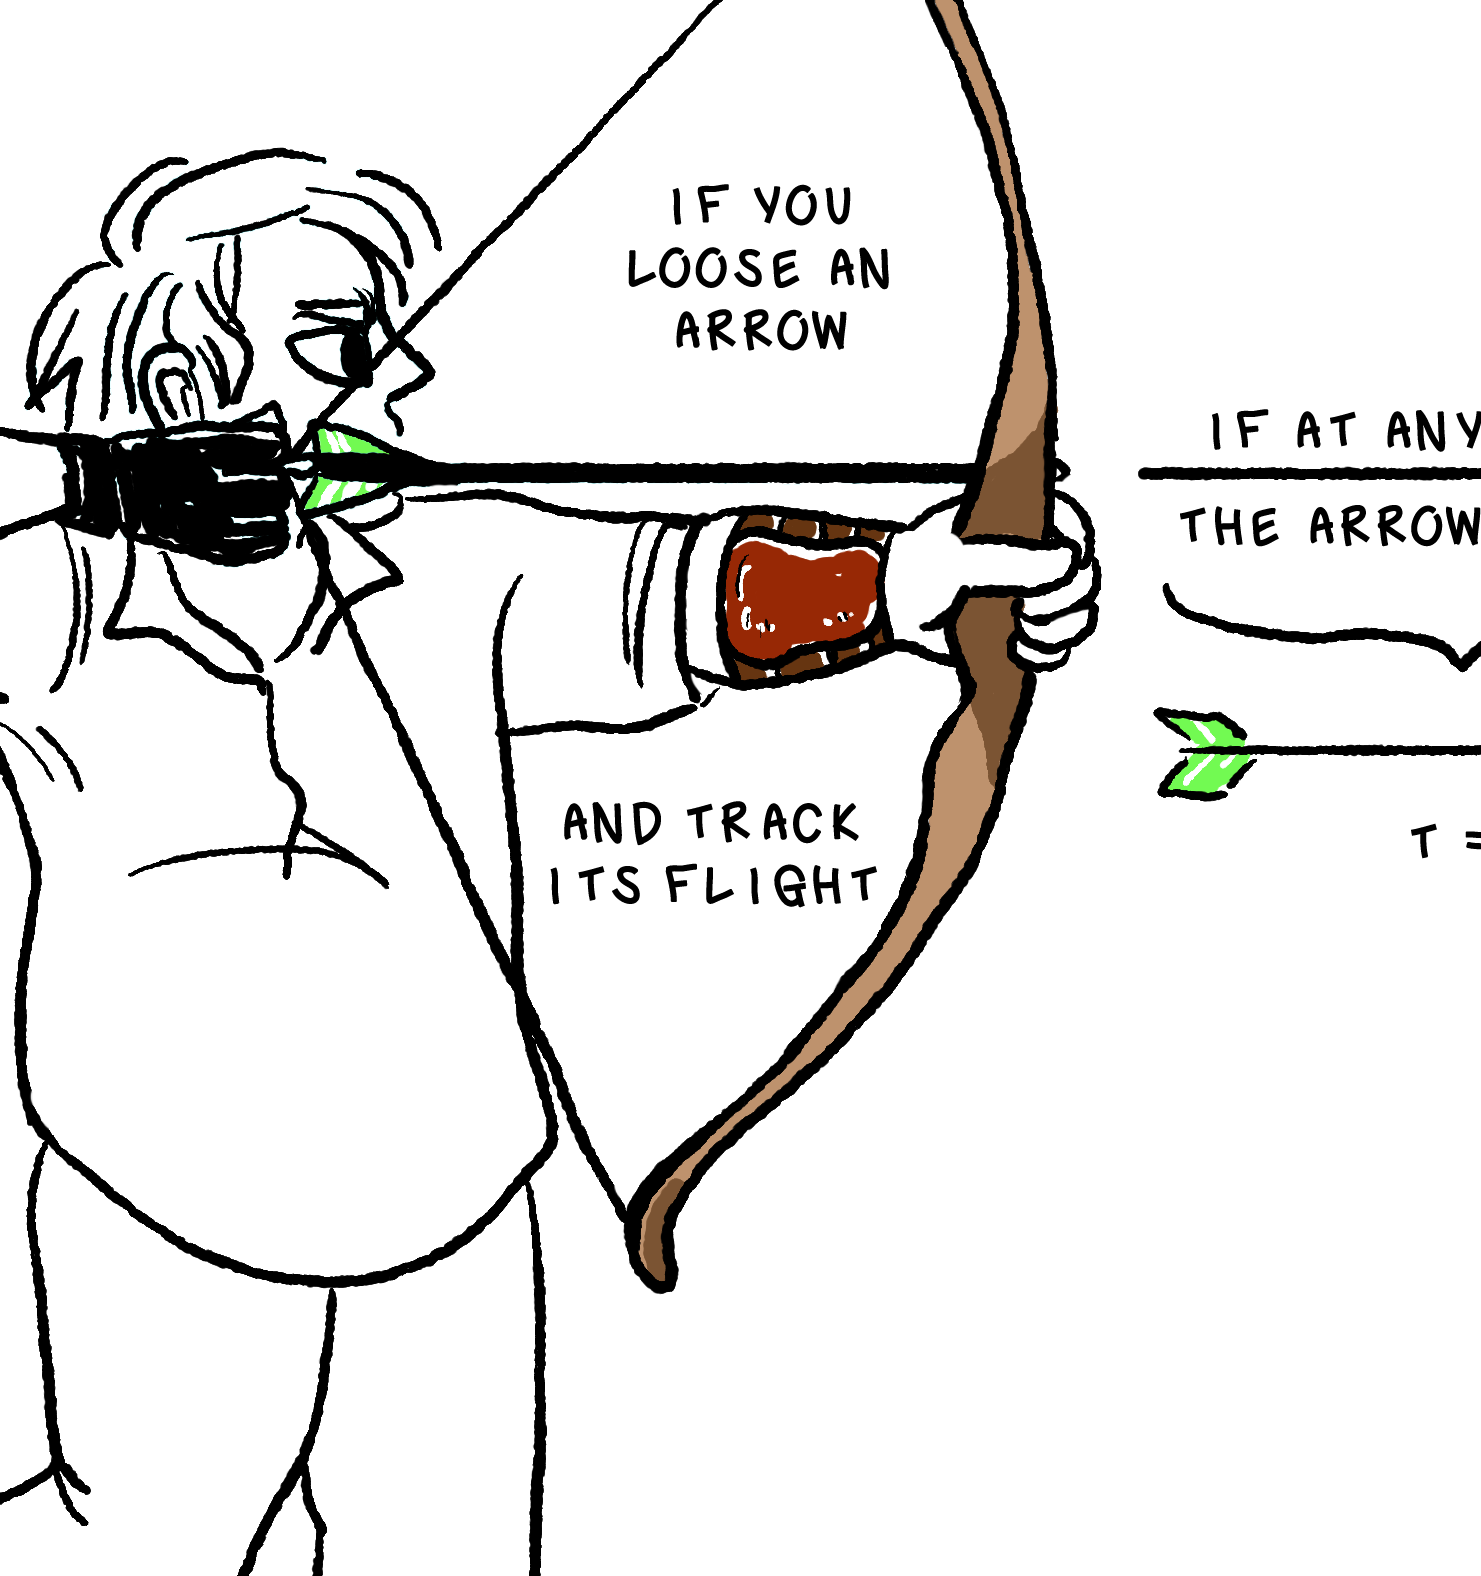 As you keep scrolling, Elk stands up straight and pulls back the arrow, readying to shoot. He looks very focused, his brow furrowed in concentration. The bright green fletching of the arrow stands out against the black and white drawing. Elk says, 'Zeno argues that if an instant lasts zero seconds... each instant is essentially immobile.